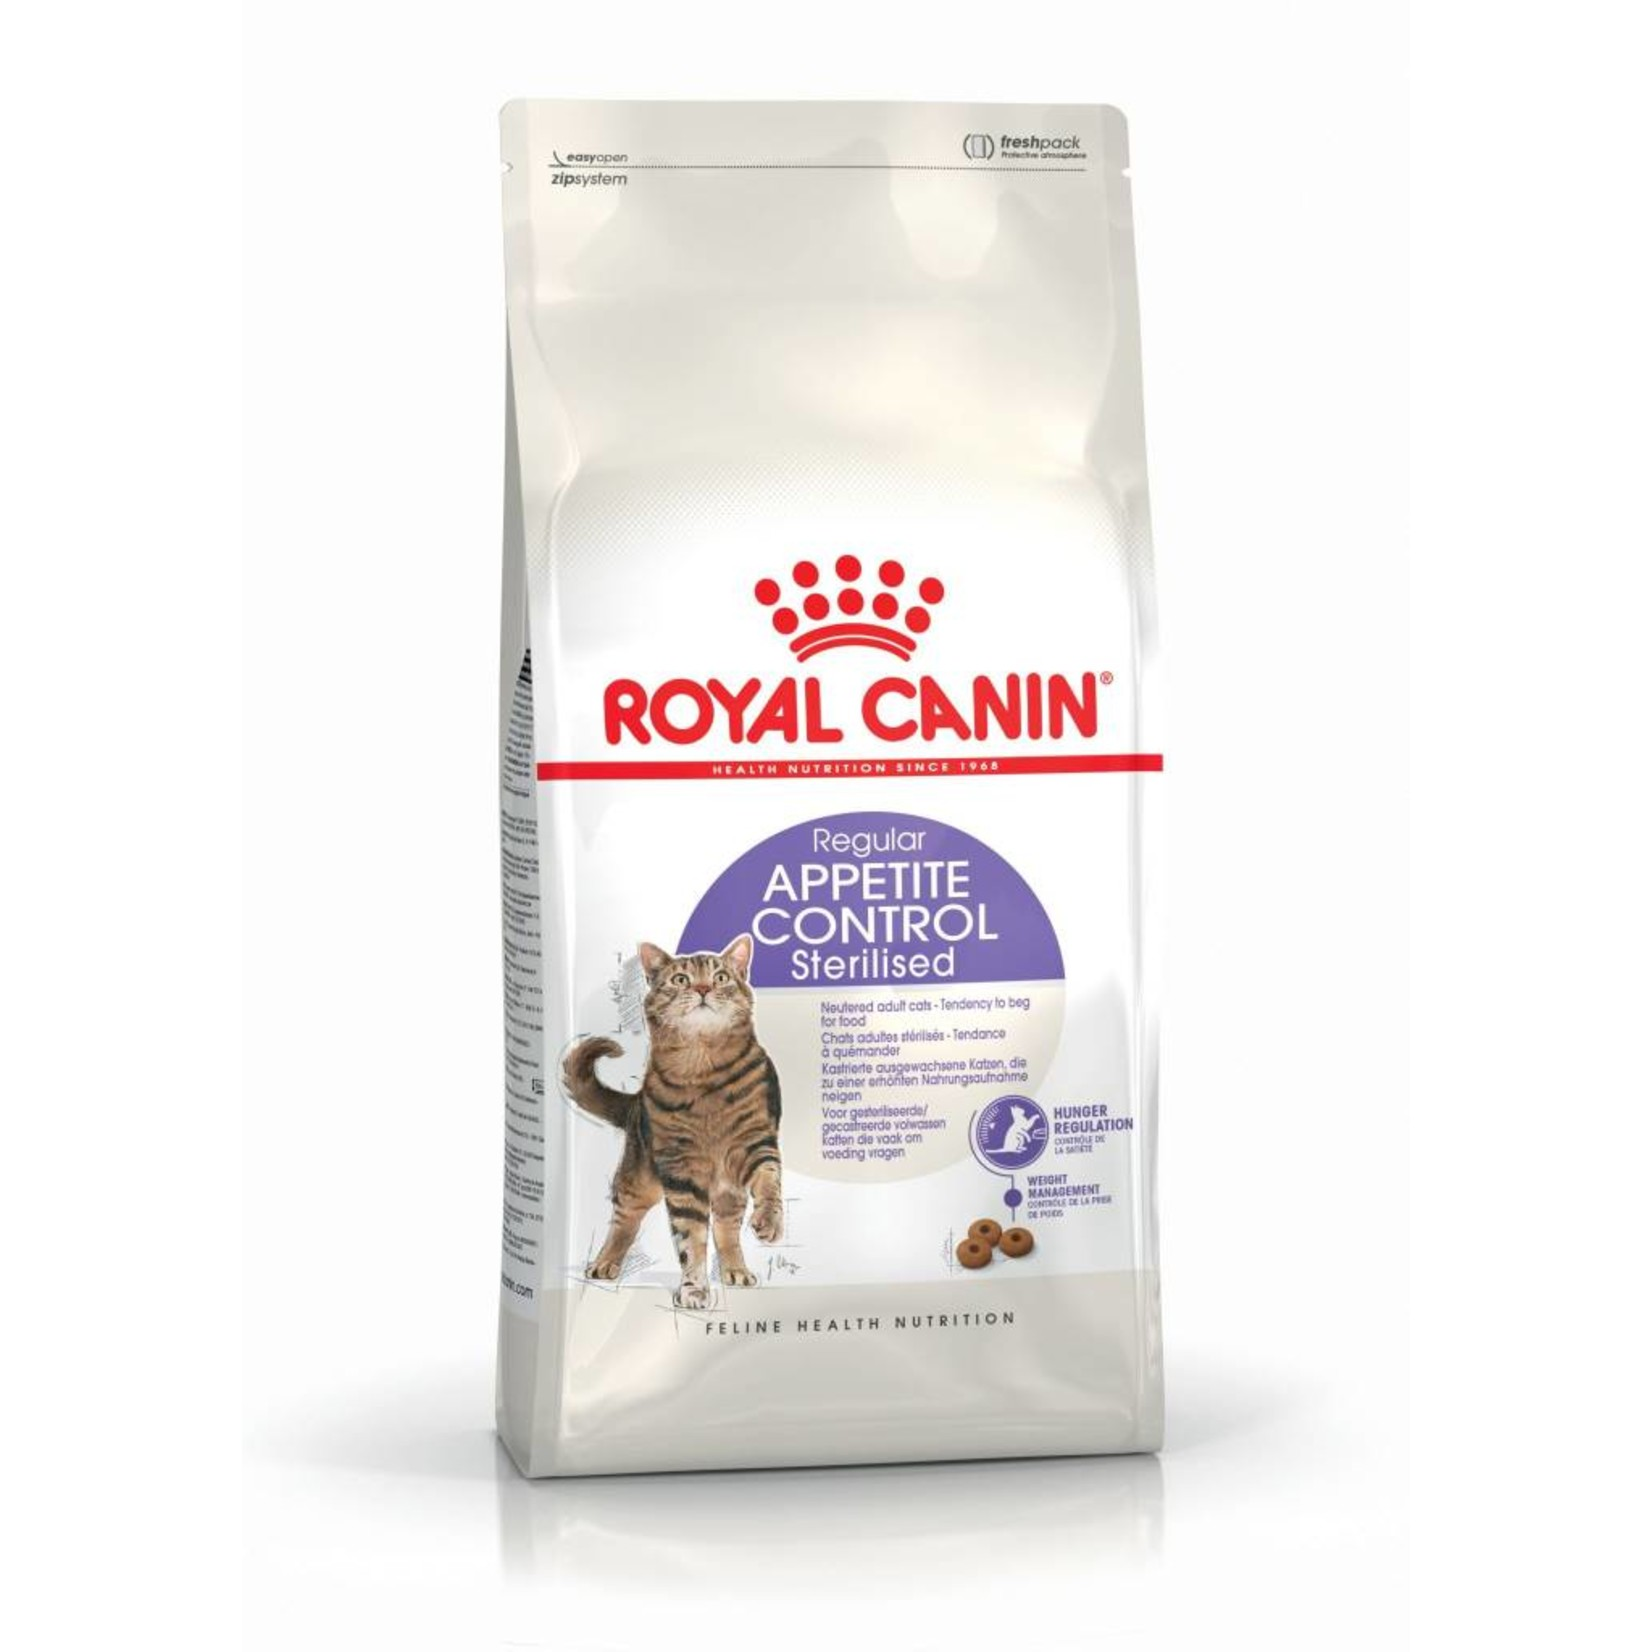 Royal Canin Appetite Control Sterilised Adult Cat Dry Food